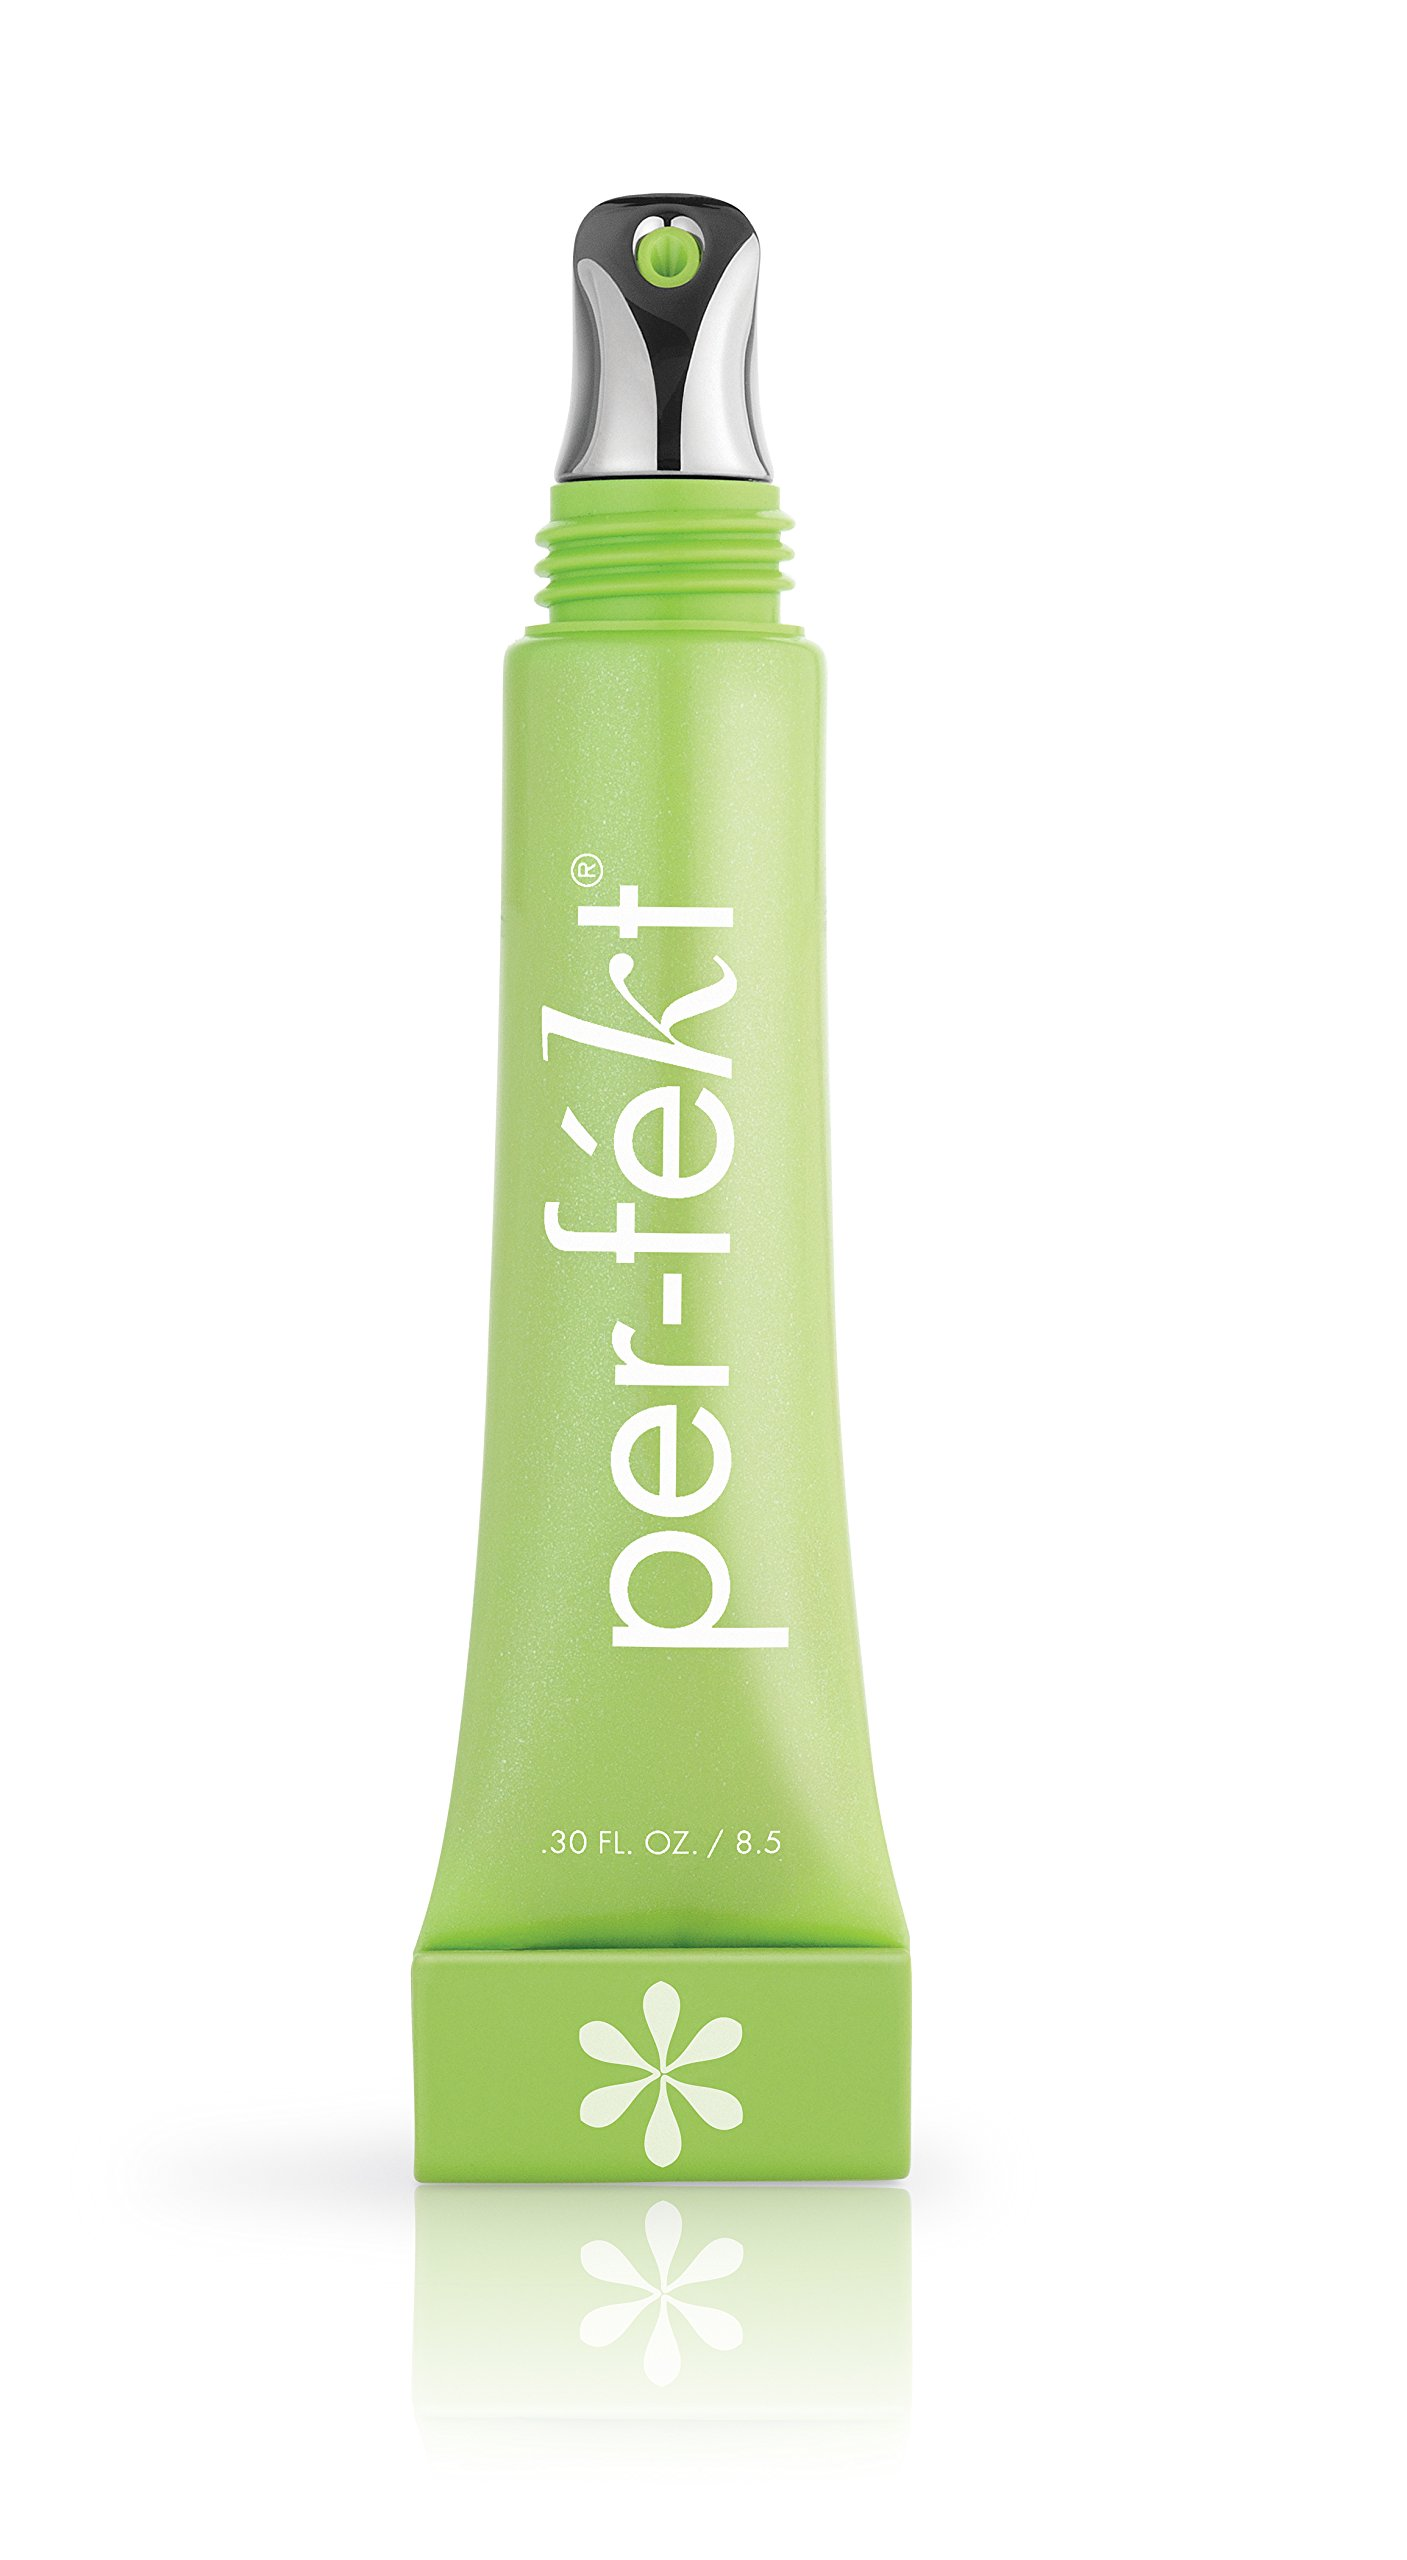 Eye Perfection Gel - A Revitalizing Under Eye Concealer Gel from Per-fekt Beauty, Your Cruelty Free Makeup Solution - Refreshed, 0.3 Fl Oz/8.5 ml by Per-fekt (Image #1)